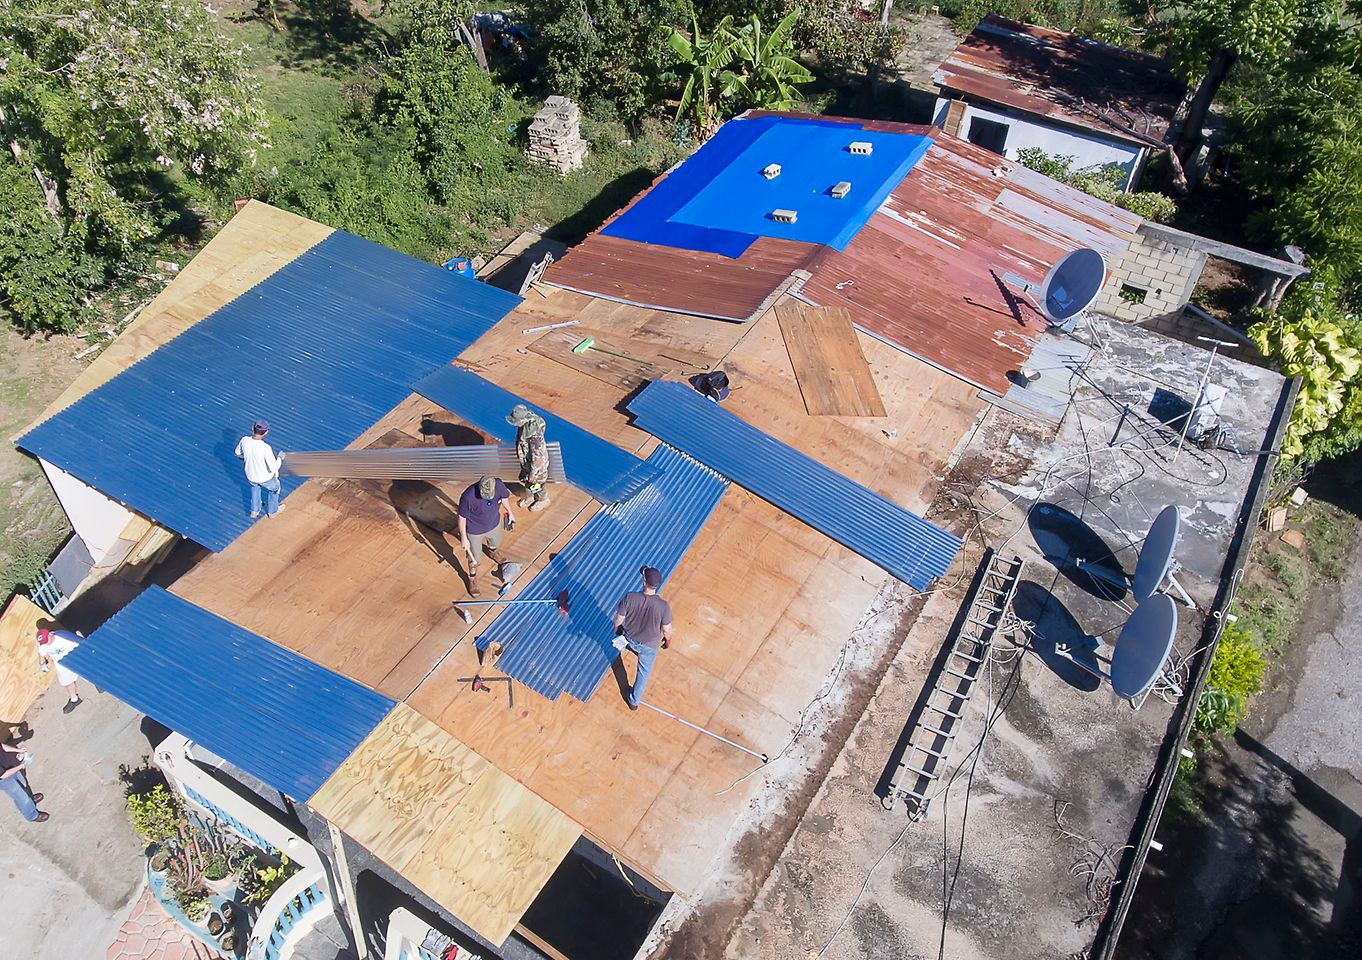 Another group reconstructed a partially destroyed roof of a house occupied by a local Henkel employee and her family.